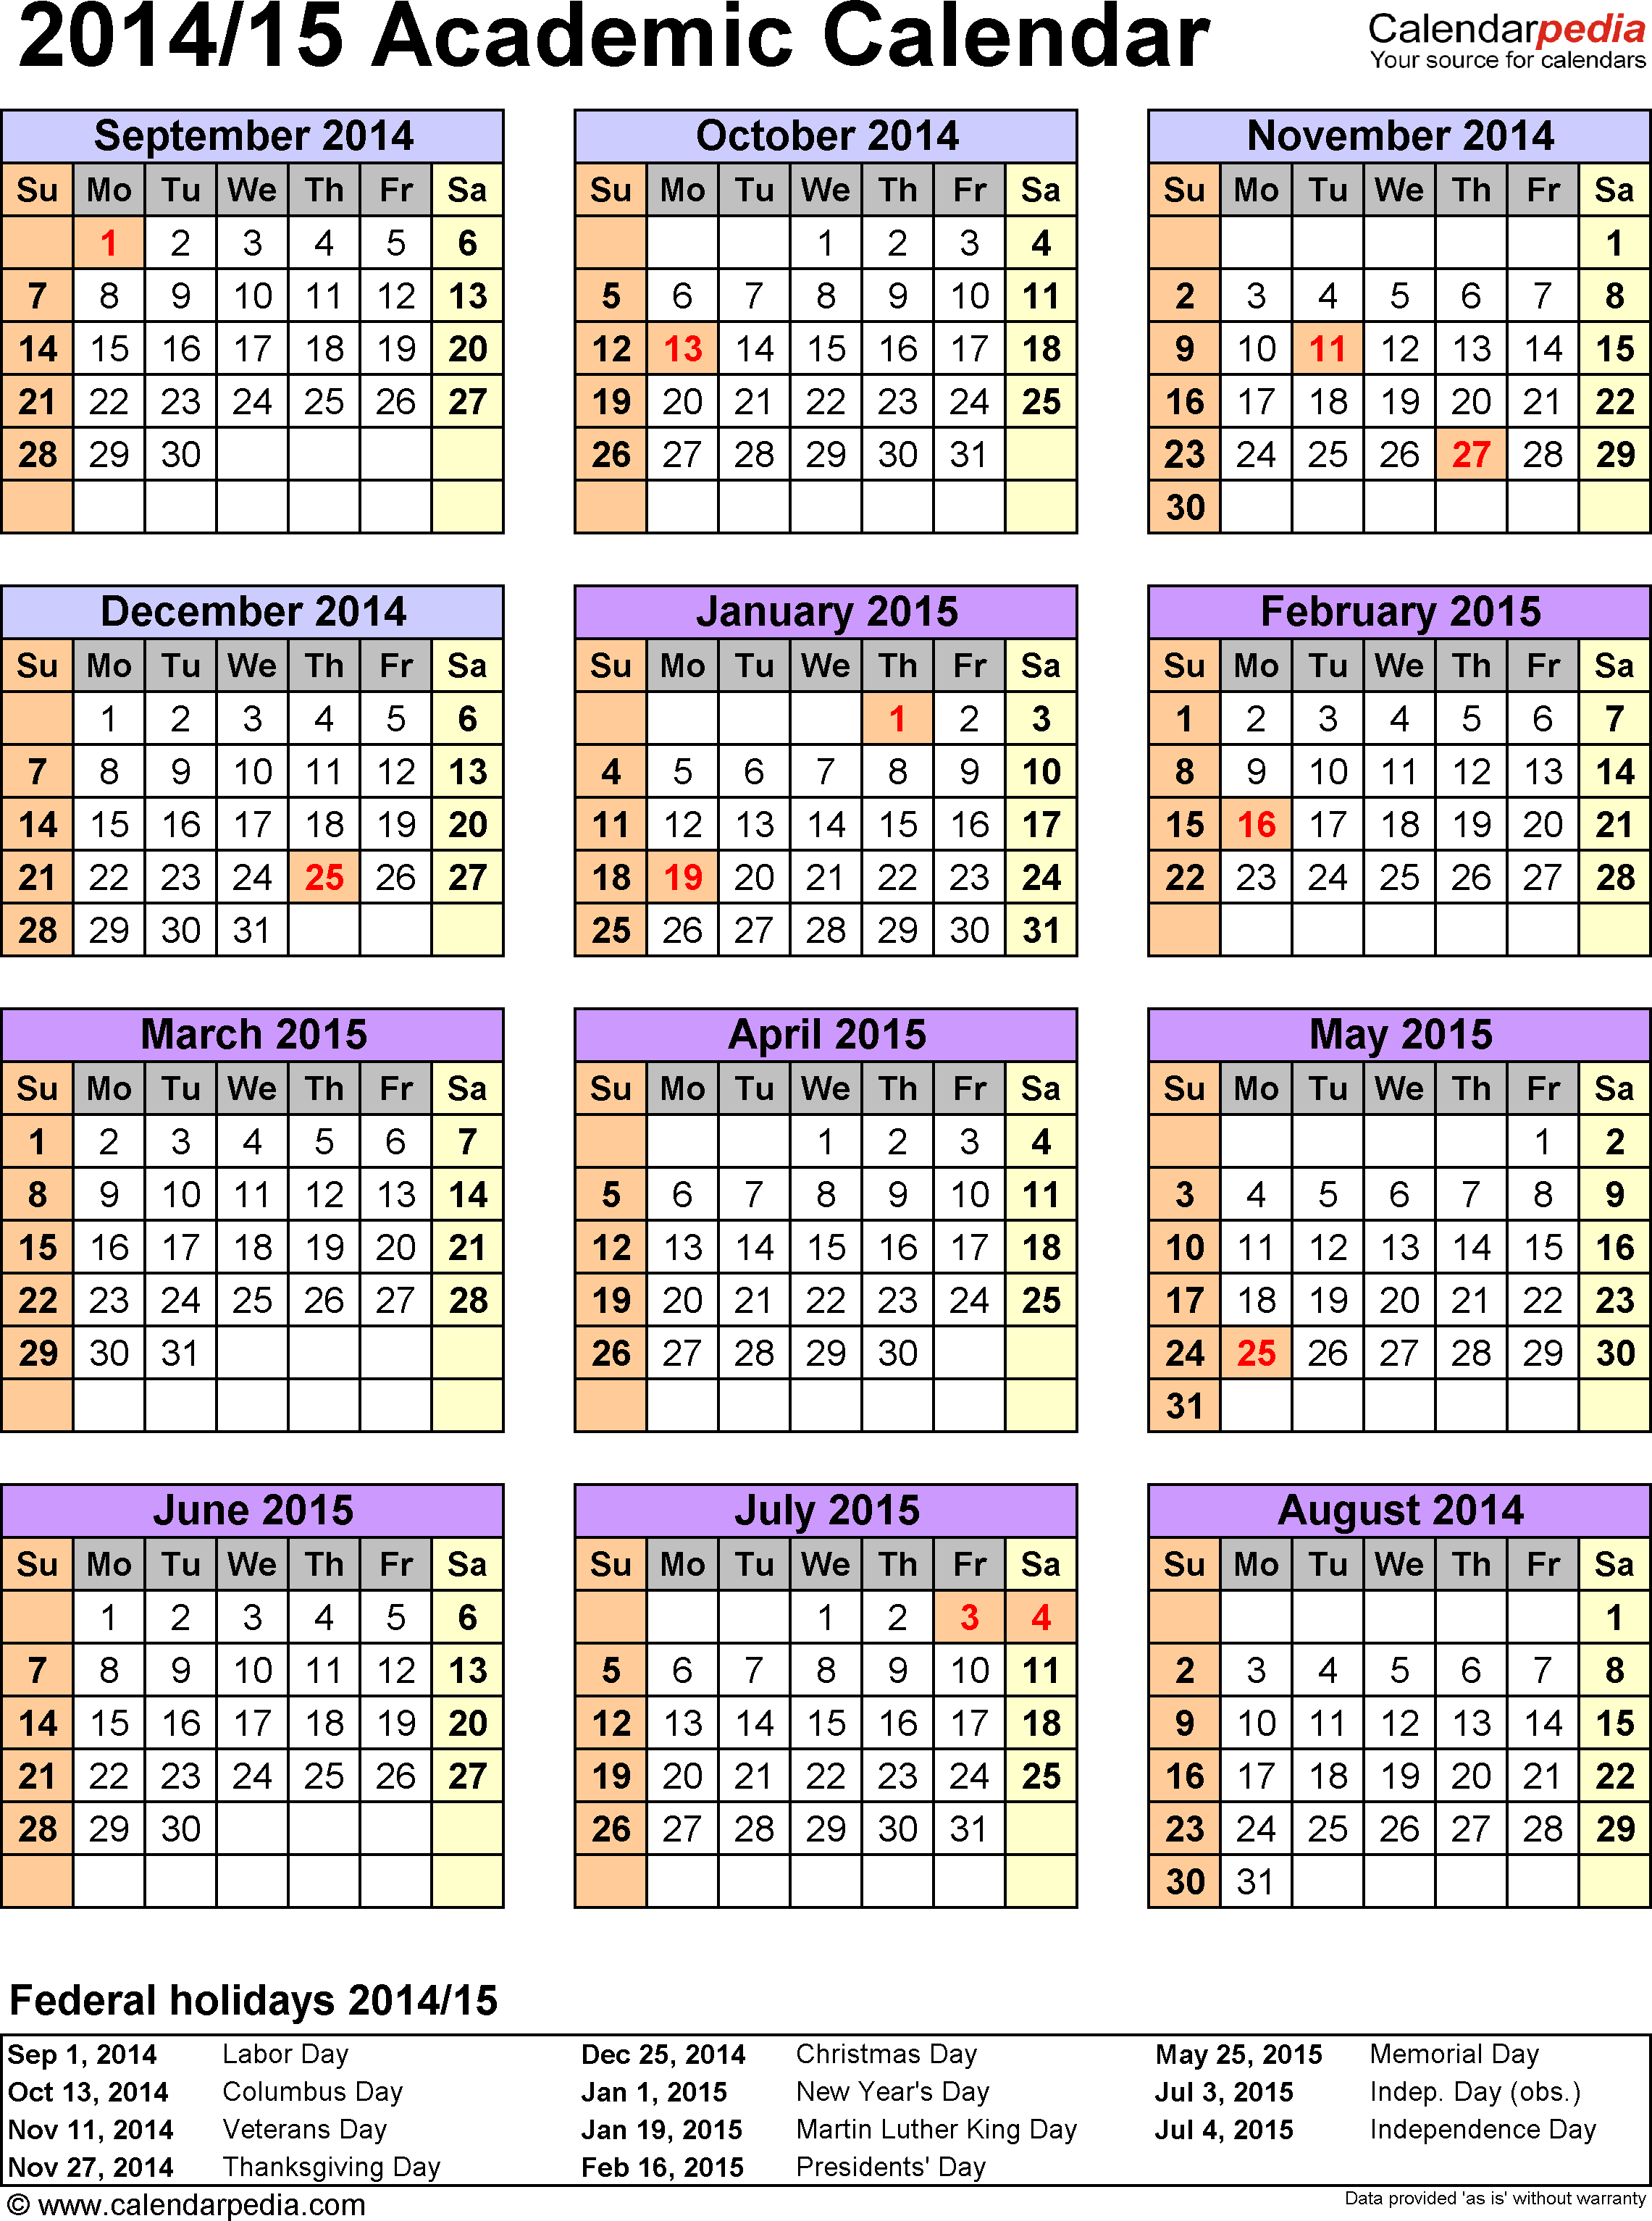 Download Template 5: Academic calendar 2014/15 for Microsoft Word (.docx file), portrait, 1 page, year at a glance